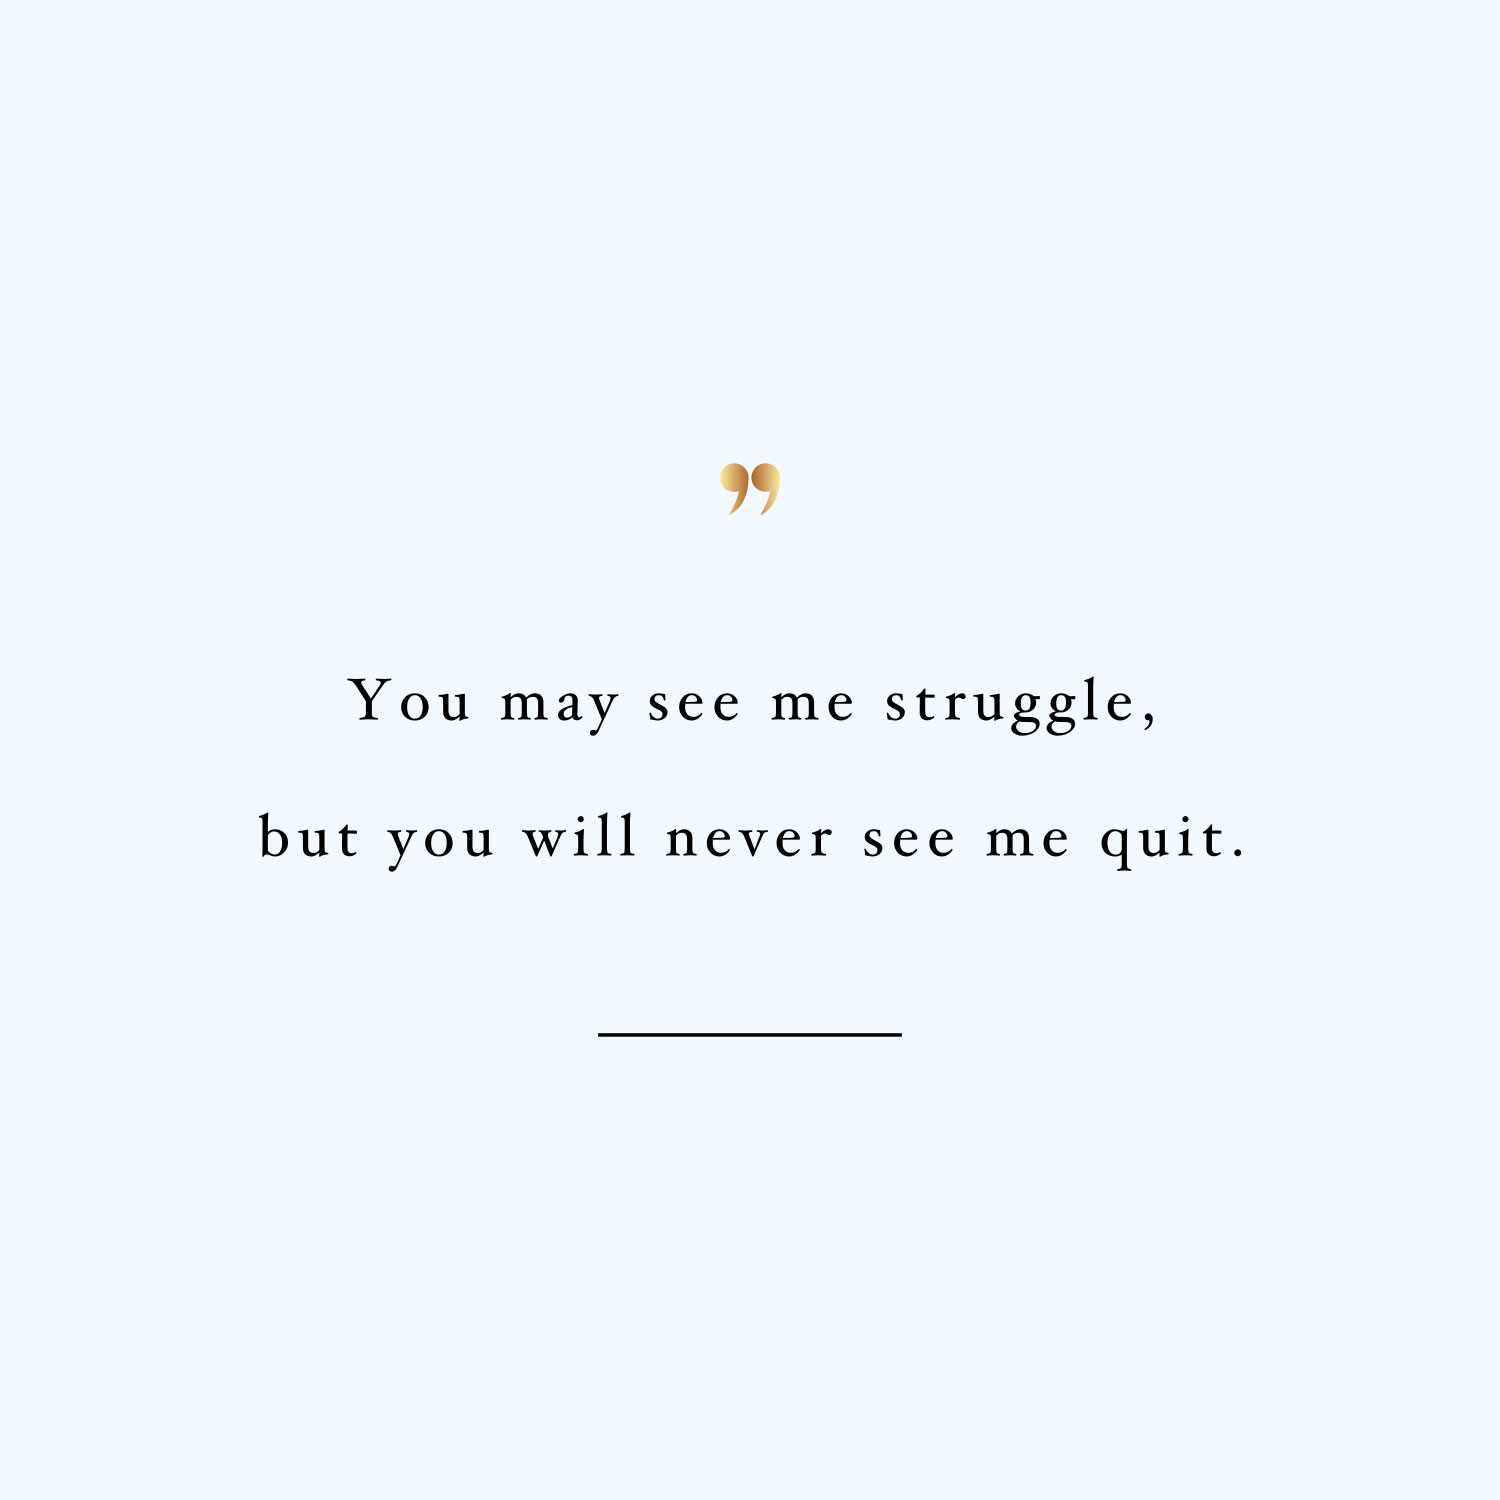 Struggle but never quit! Browse our collection of healthy lifestyle inspirational quotes and get instant weight loss and training motivation. Stay focused and get fit, healthy and happy! https://www.spotebi.com/workout-motivation/struggle-but-never-quit/